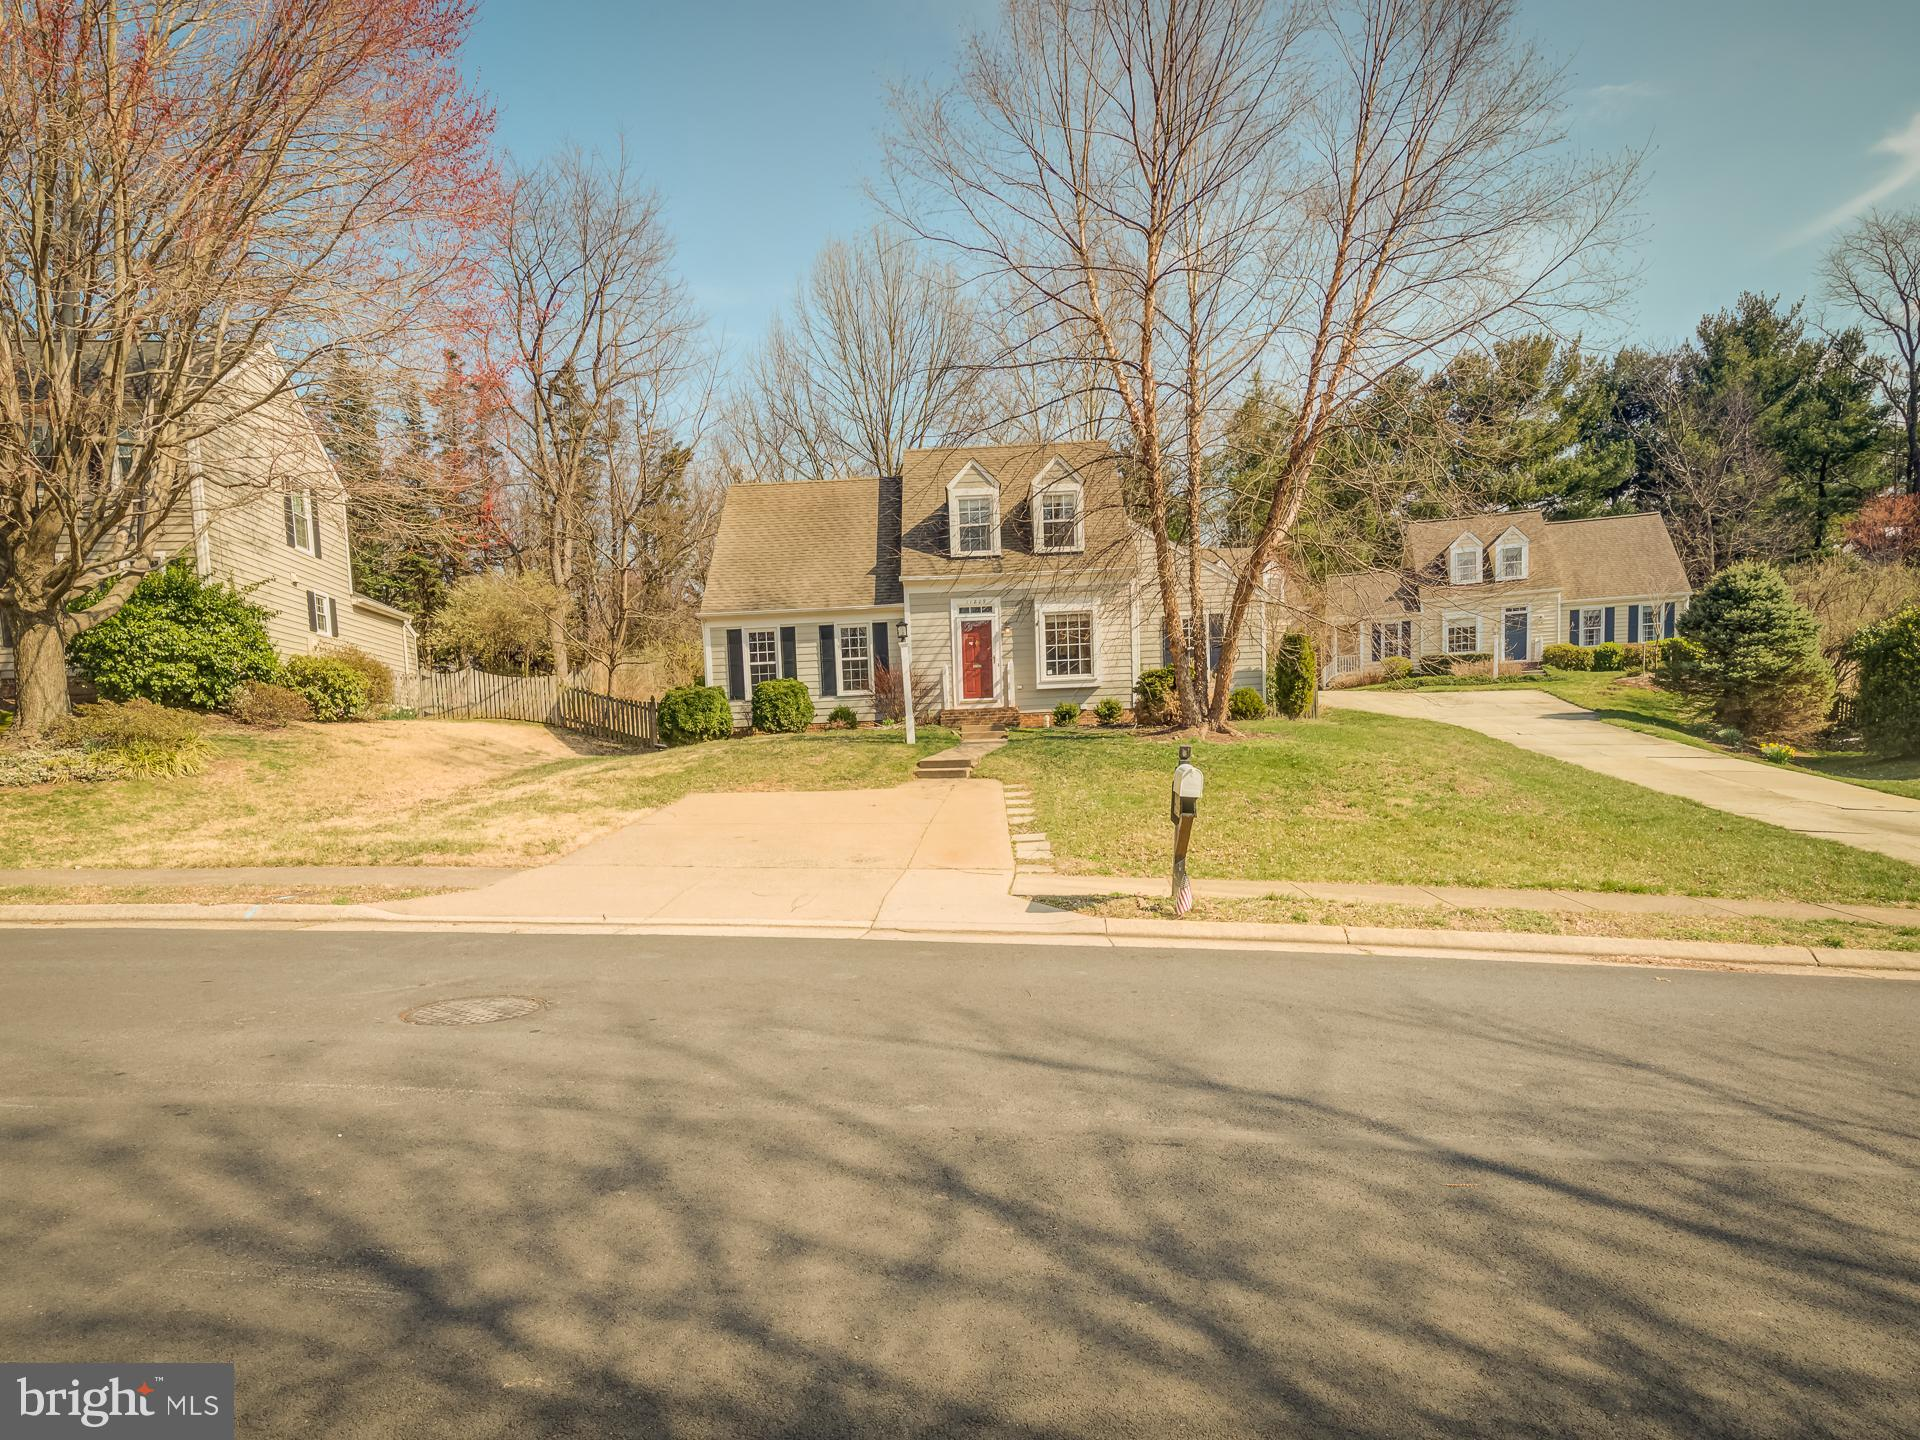 SHOW AND SELL THIS POPULAR CAPE COD HOME WITH RARE MAIN LEVEL MASTER BEDROOM. Don't miss this lovely